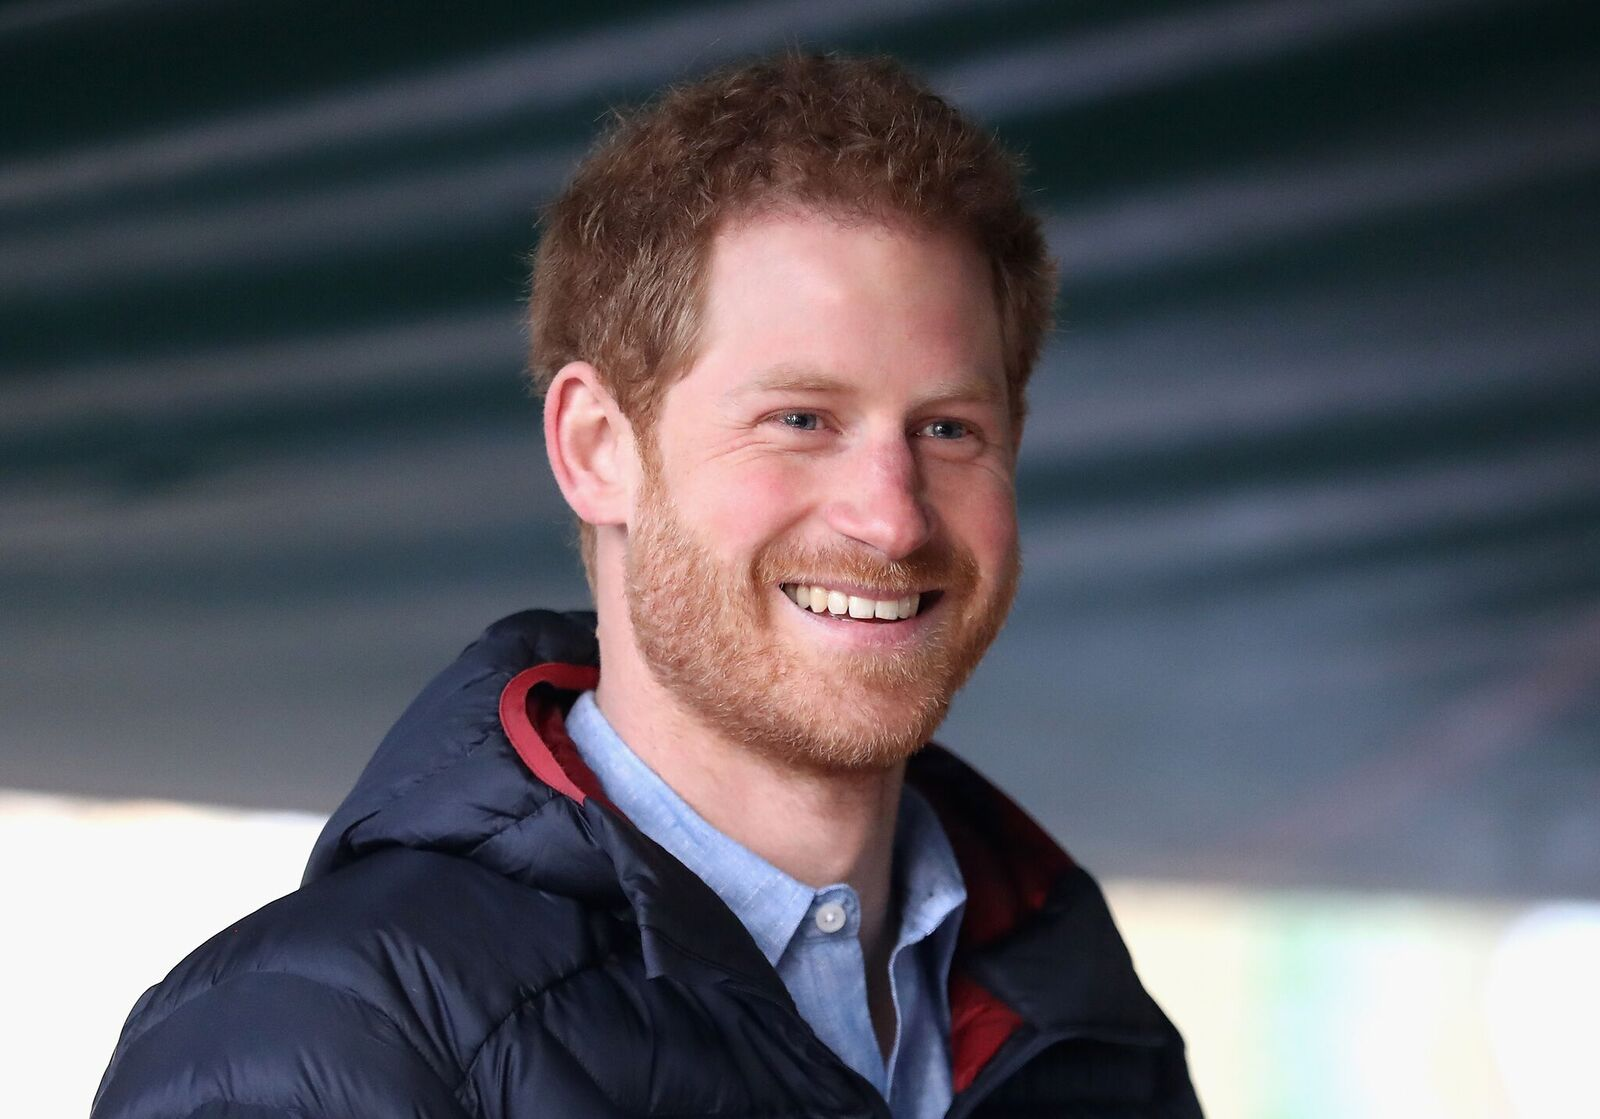 Prince Harry visits the Help for Heroes Hidden Wounds Service at Tedworth House. | Source: Getty Images